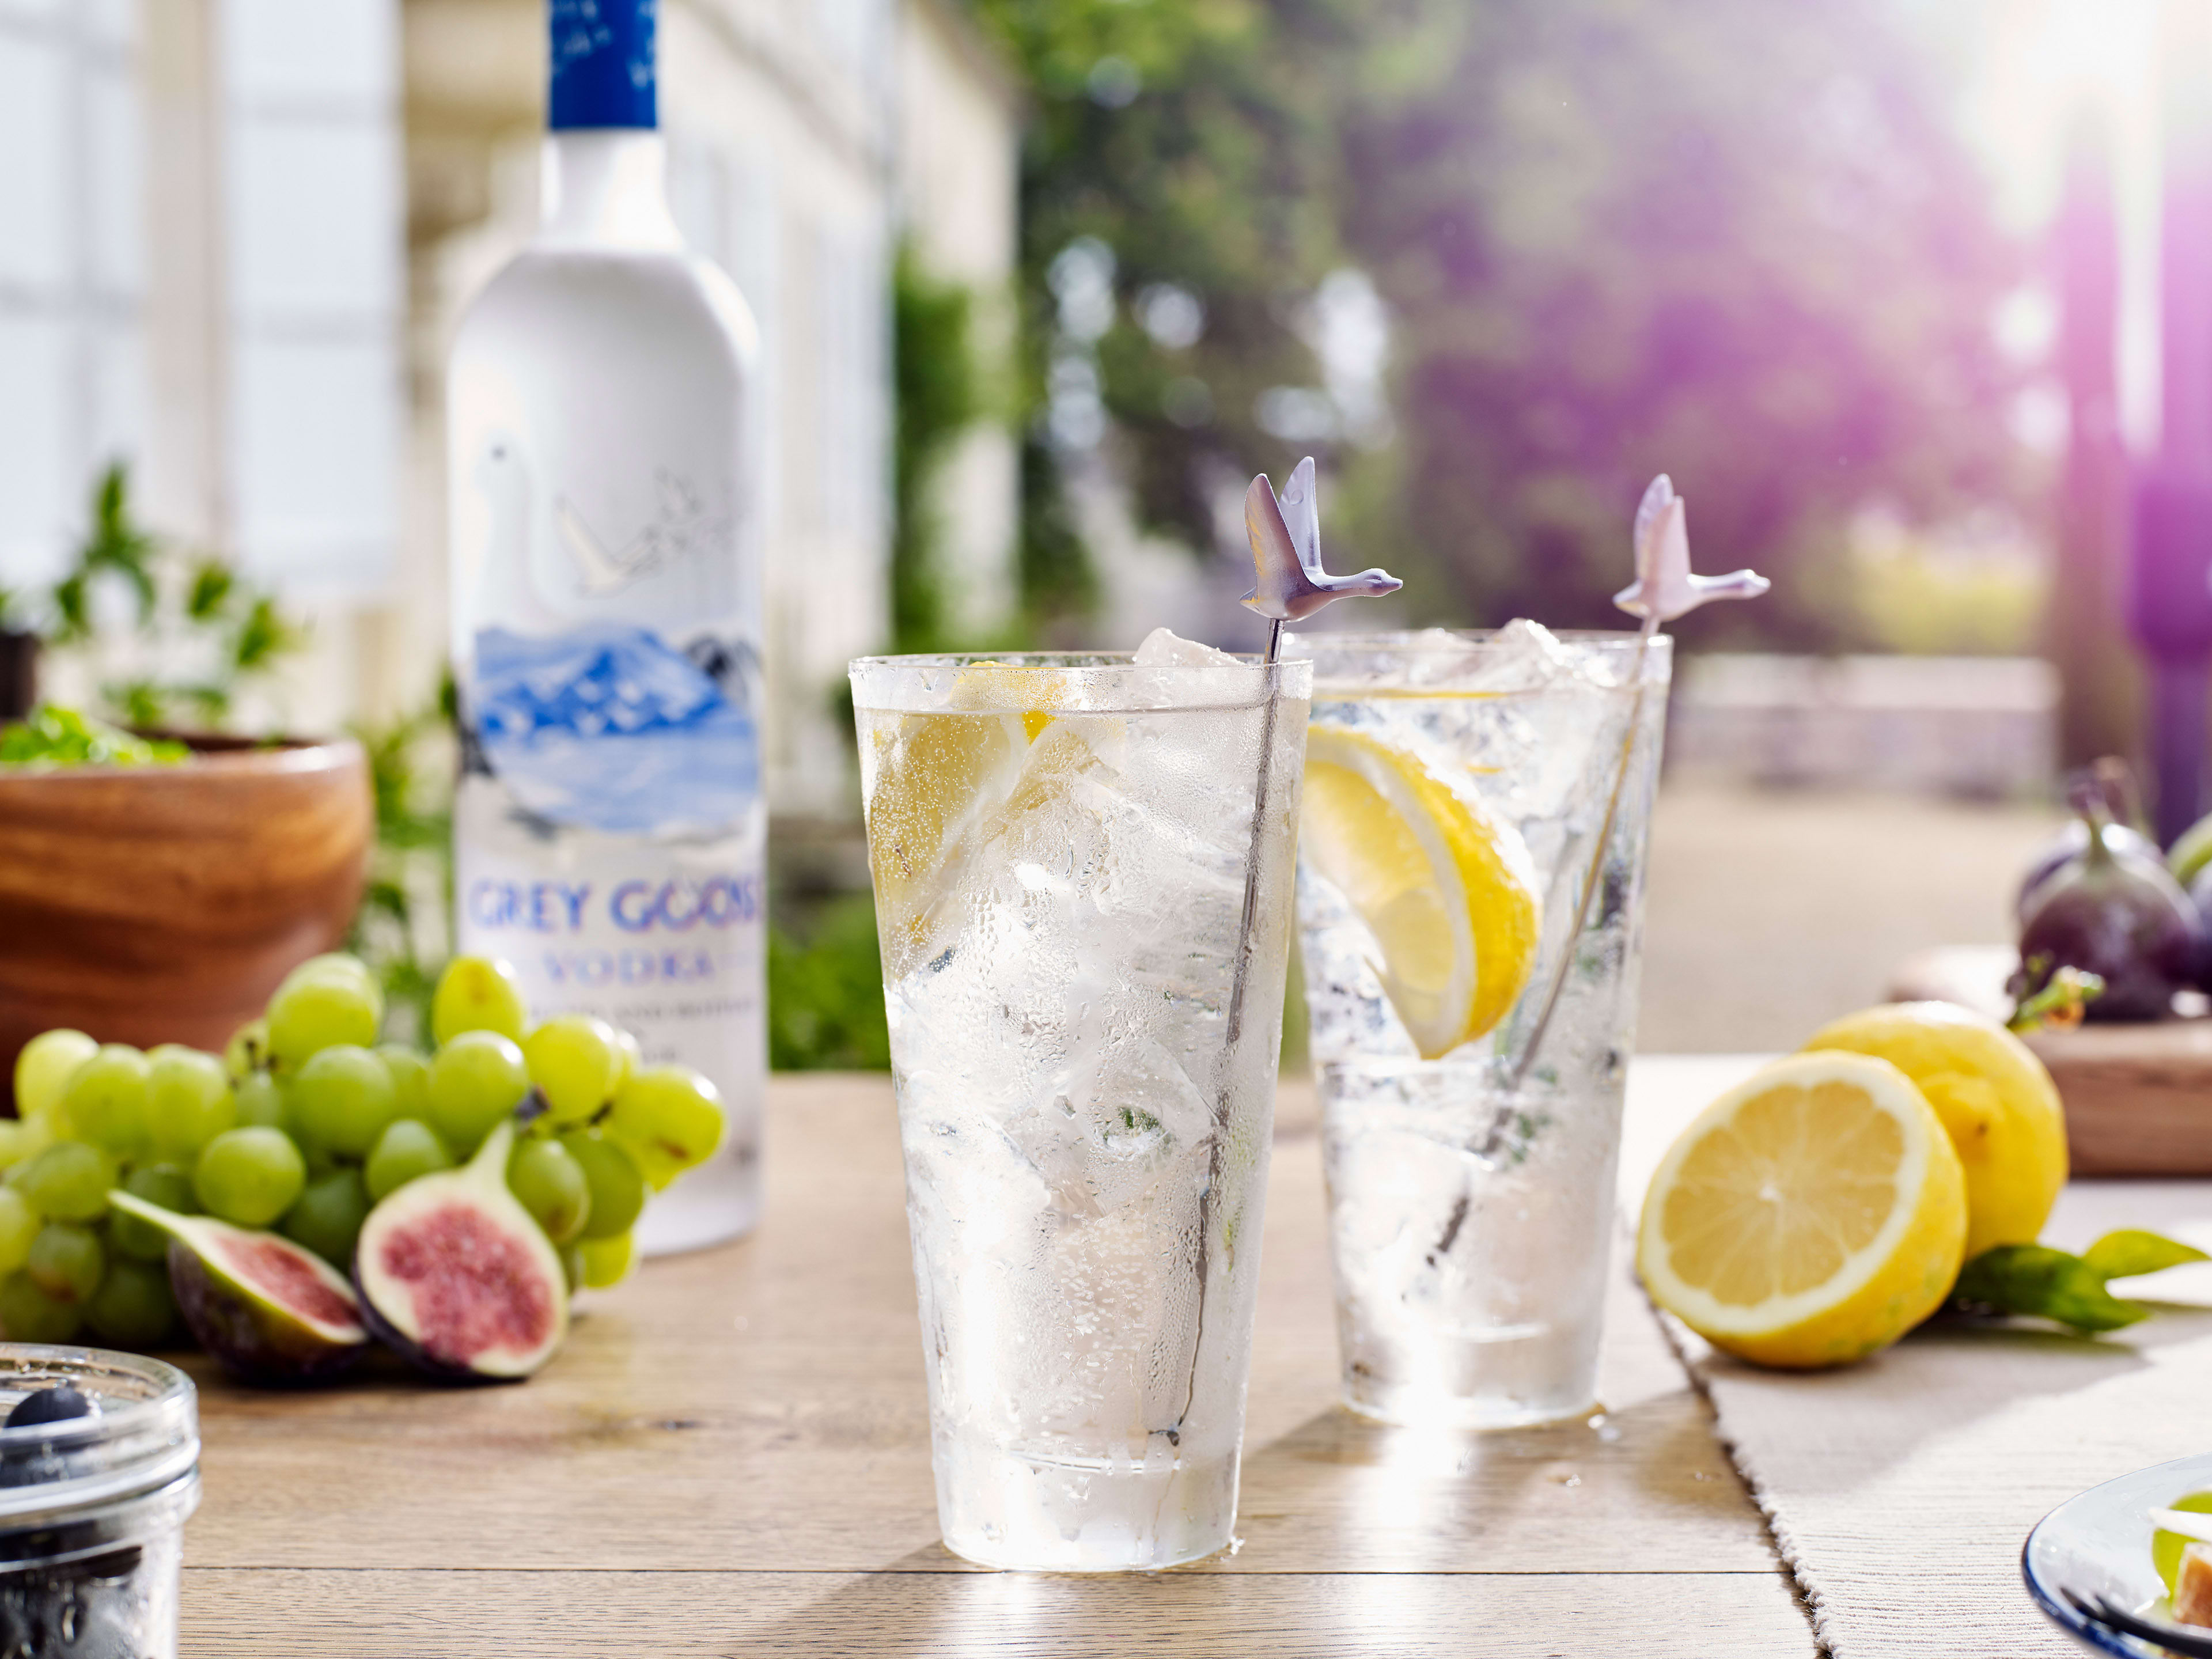 Richard Moran Grey Goose Luxury Drinks 005